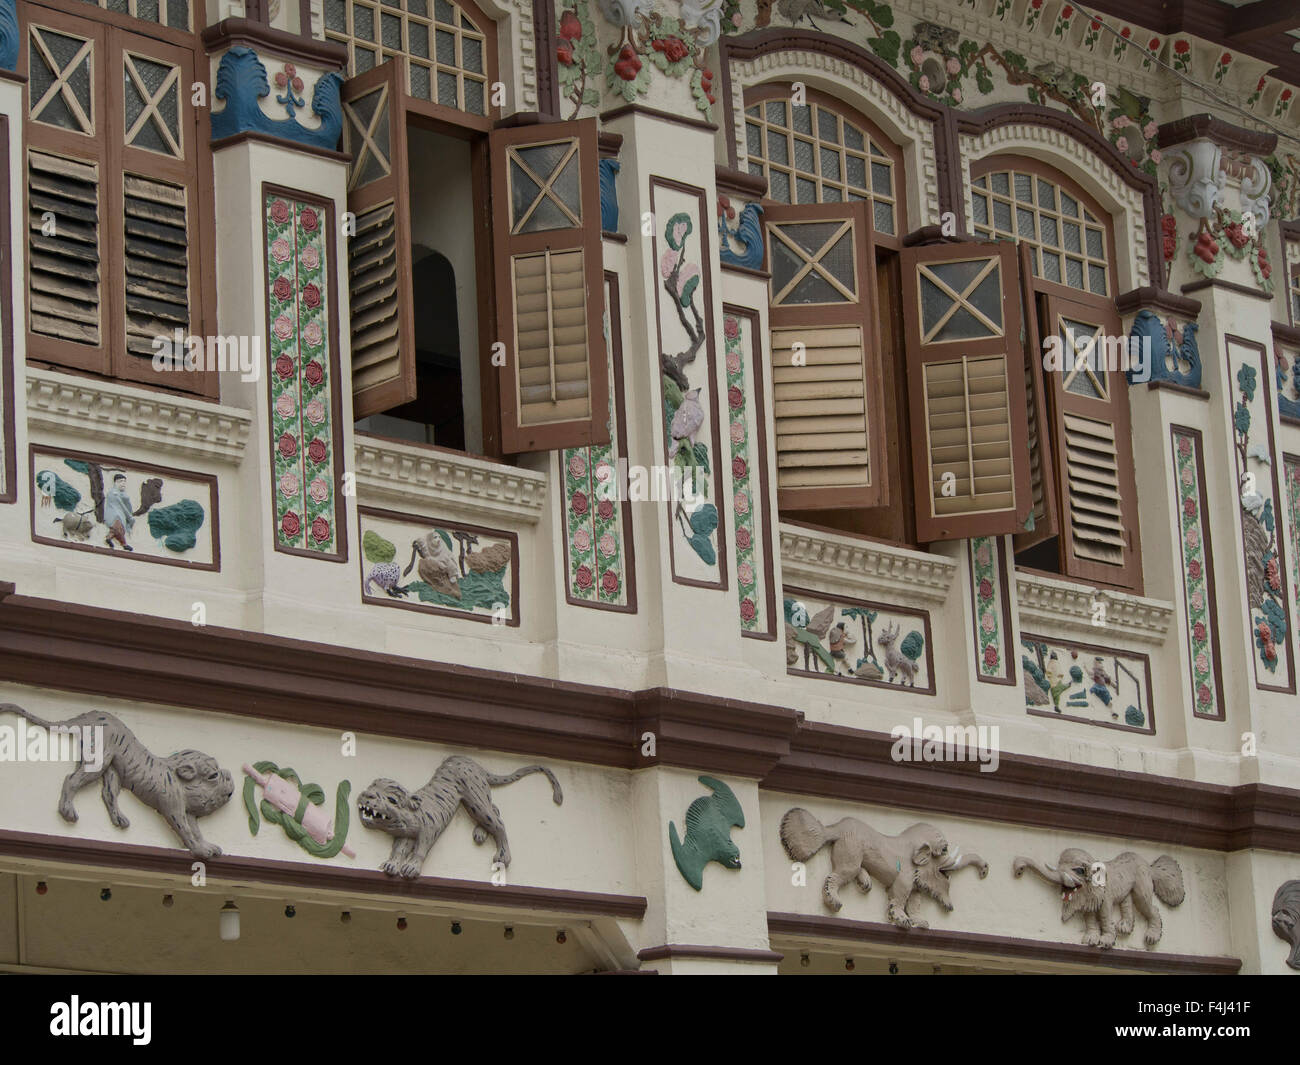 Lorong Bachok shophouse and cultural association with classic Chinese tales, Geylang area of Singapore - Stock Image